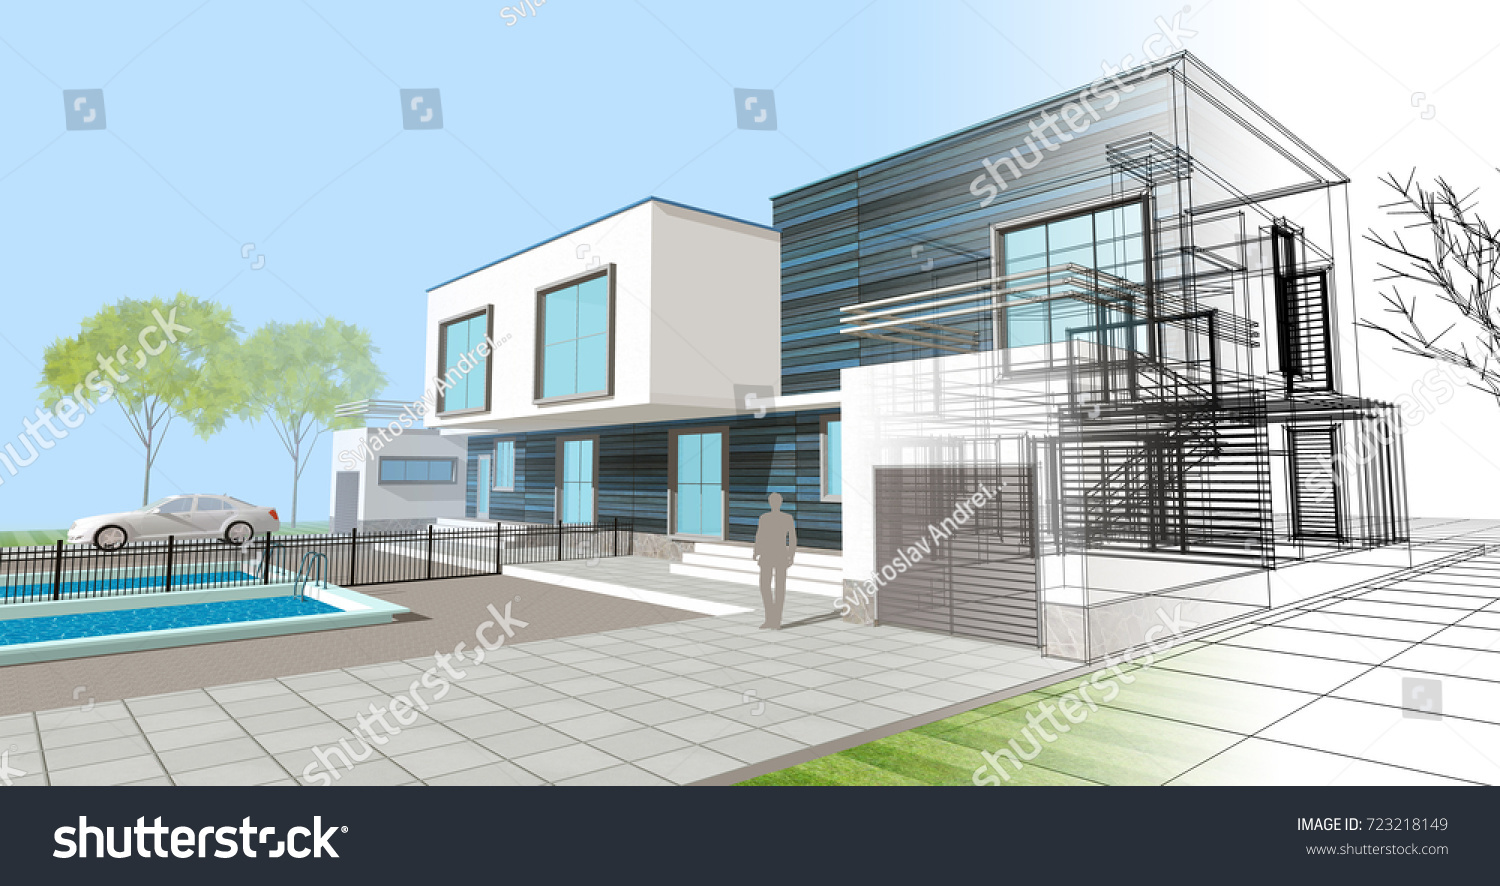 Townhouse Terrace Architectural Sketch 3 D Illustration Stock ... on townhouse condo, townhouse floor plans, townhouse with garage, townhouse stoop, townhouse construction, townhouse elevations, townhouse rentals, townhouse living, townhouse from inside,